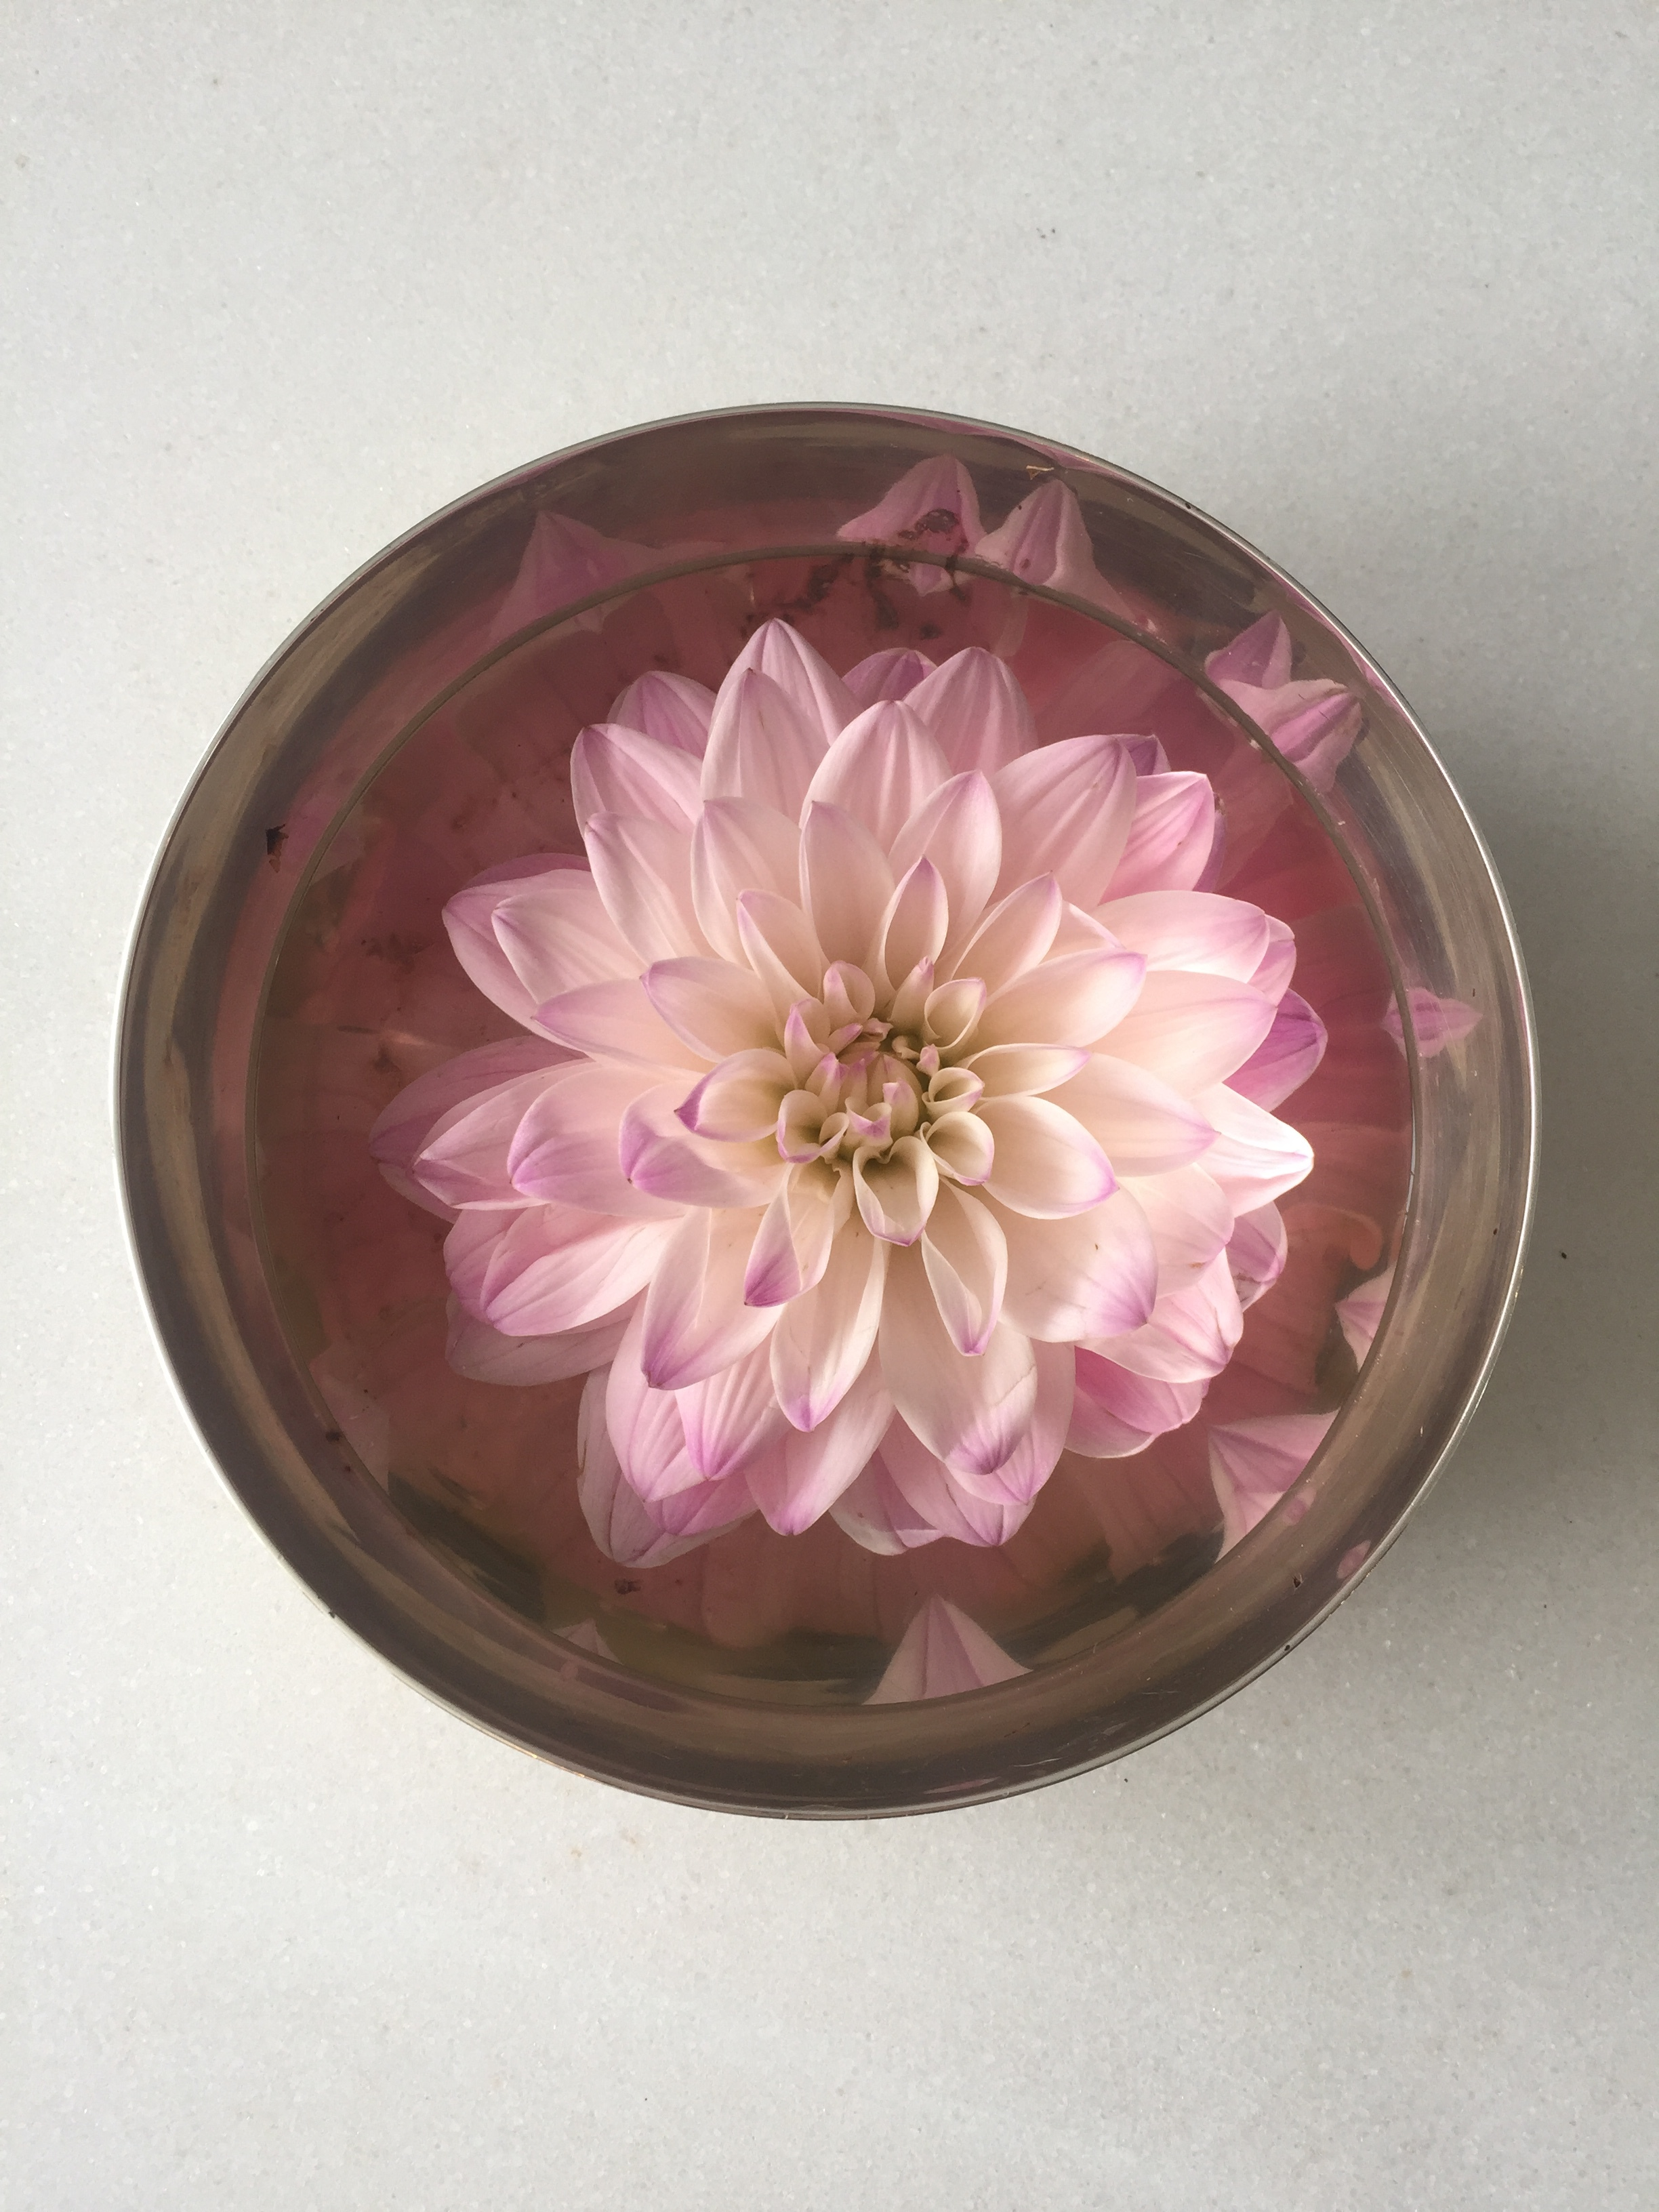 A flesh cut pink flower floats in a reflective brass bowl.